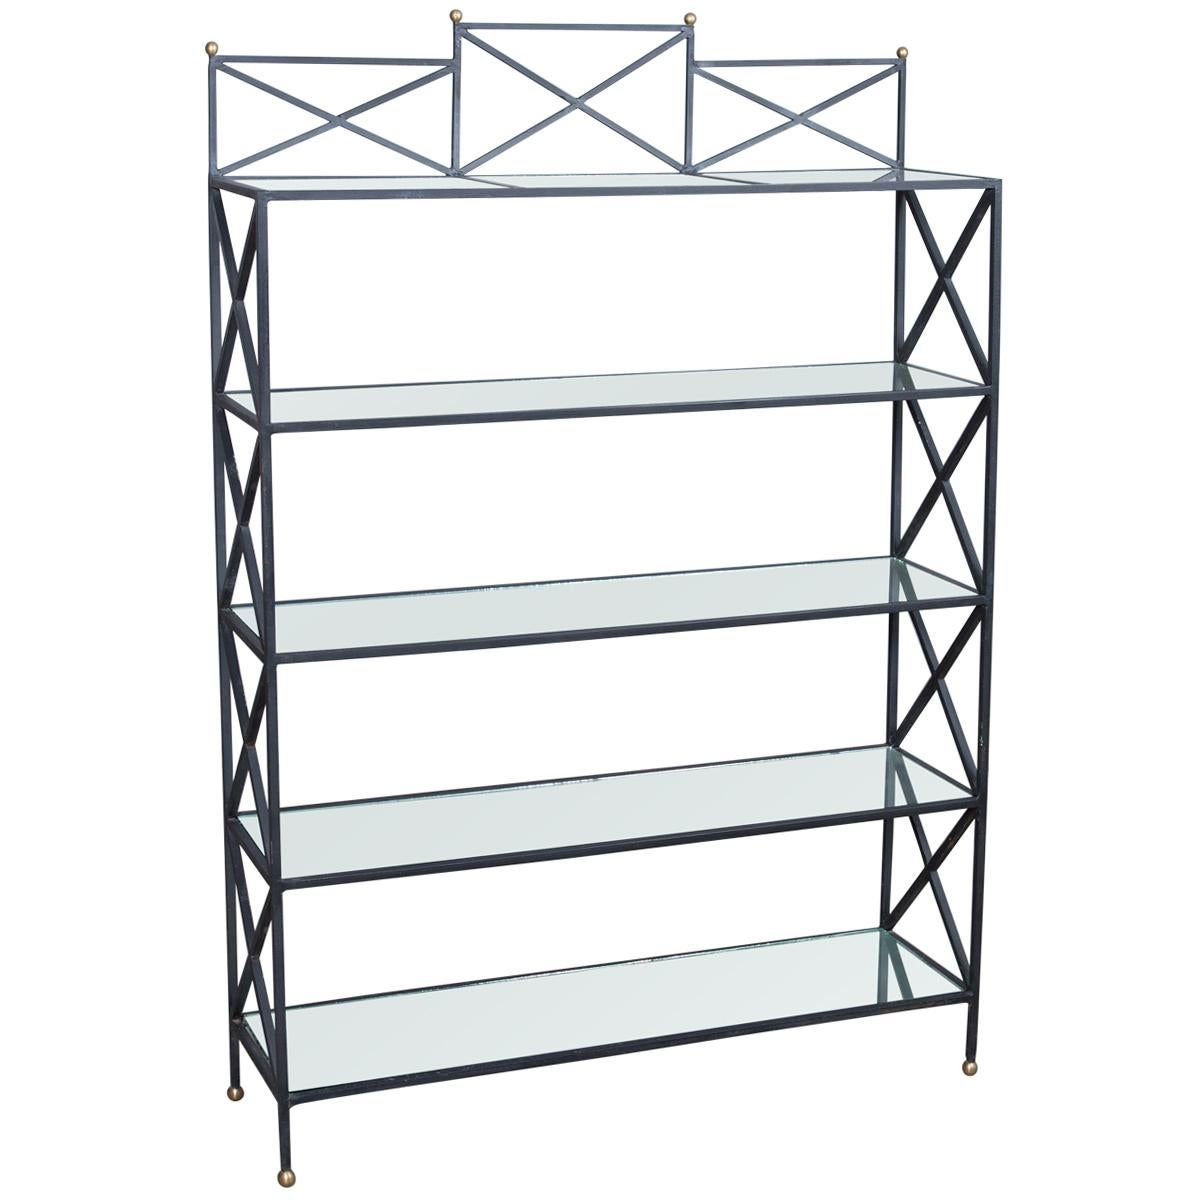 Iron Neoclassical Style Étagère with Mirror Shelves